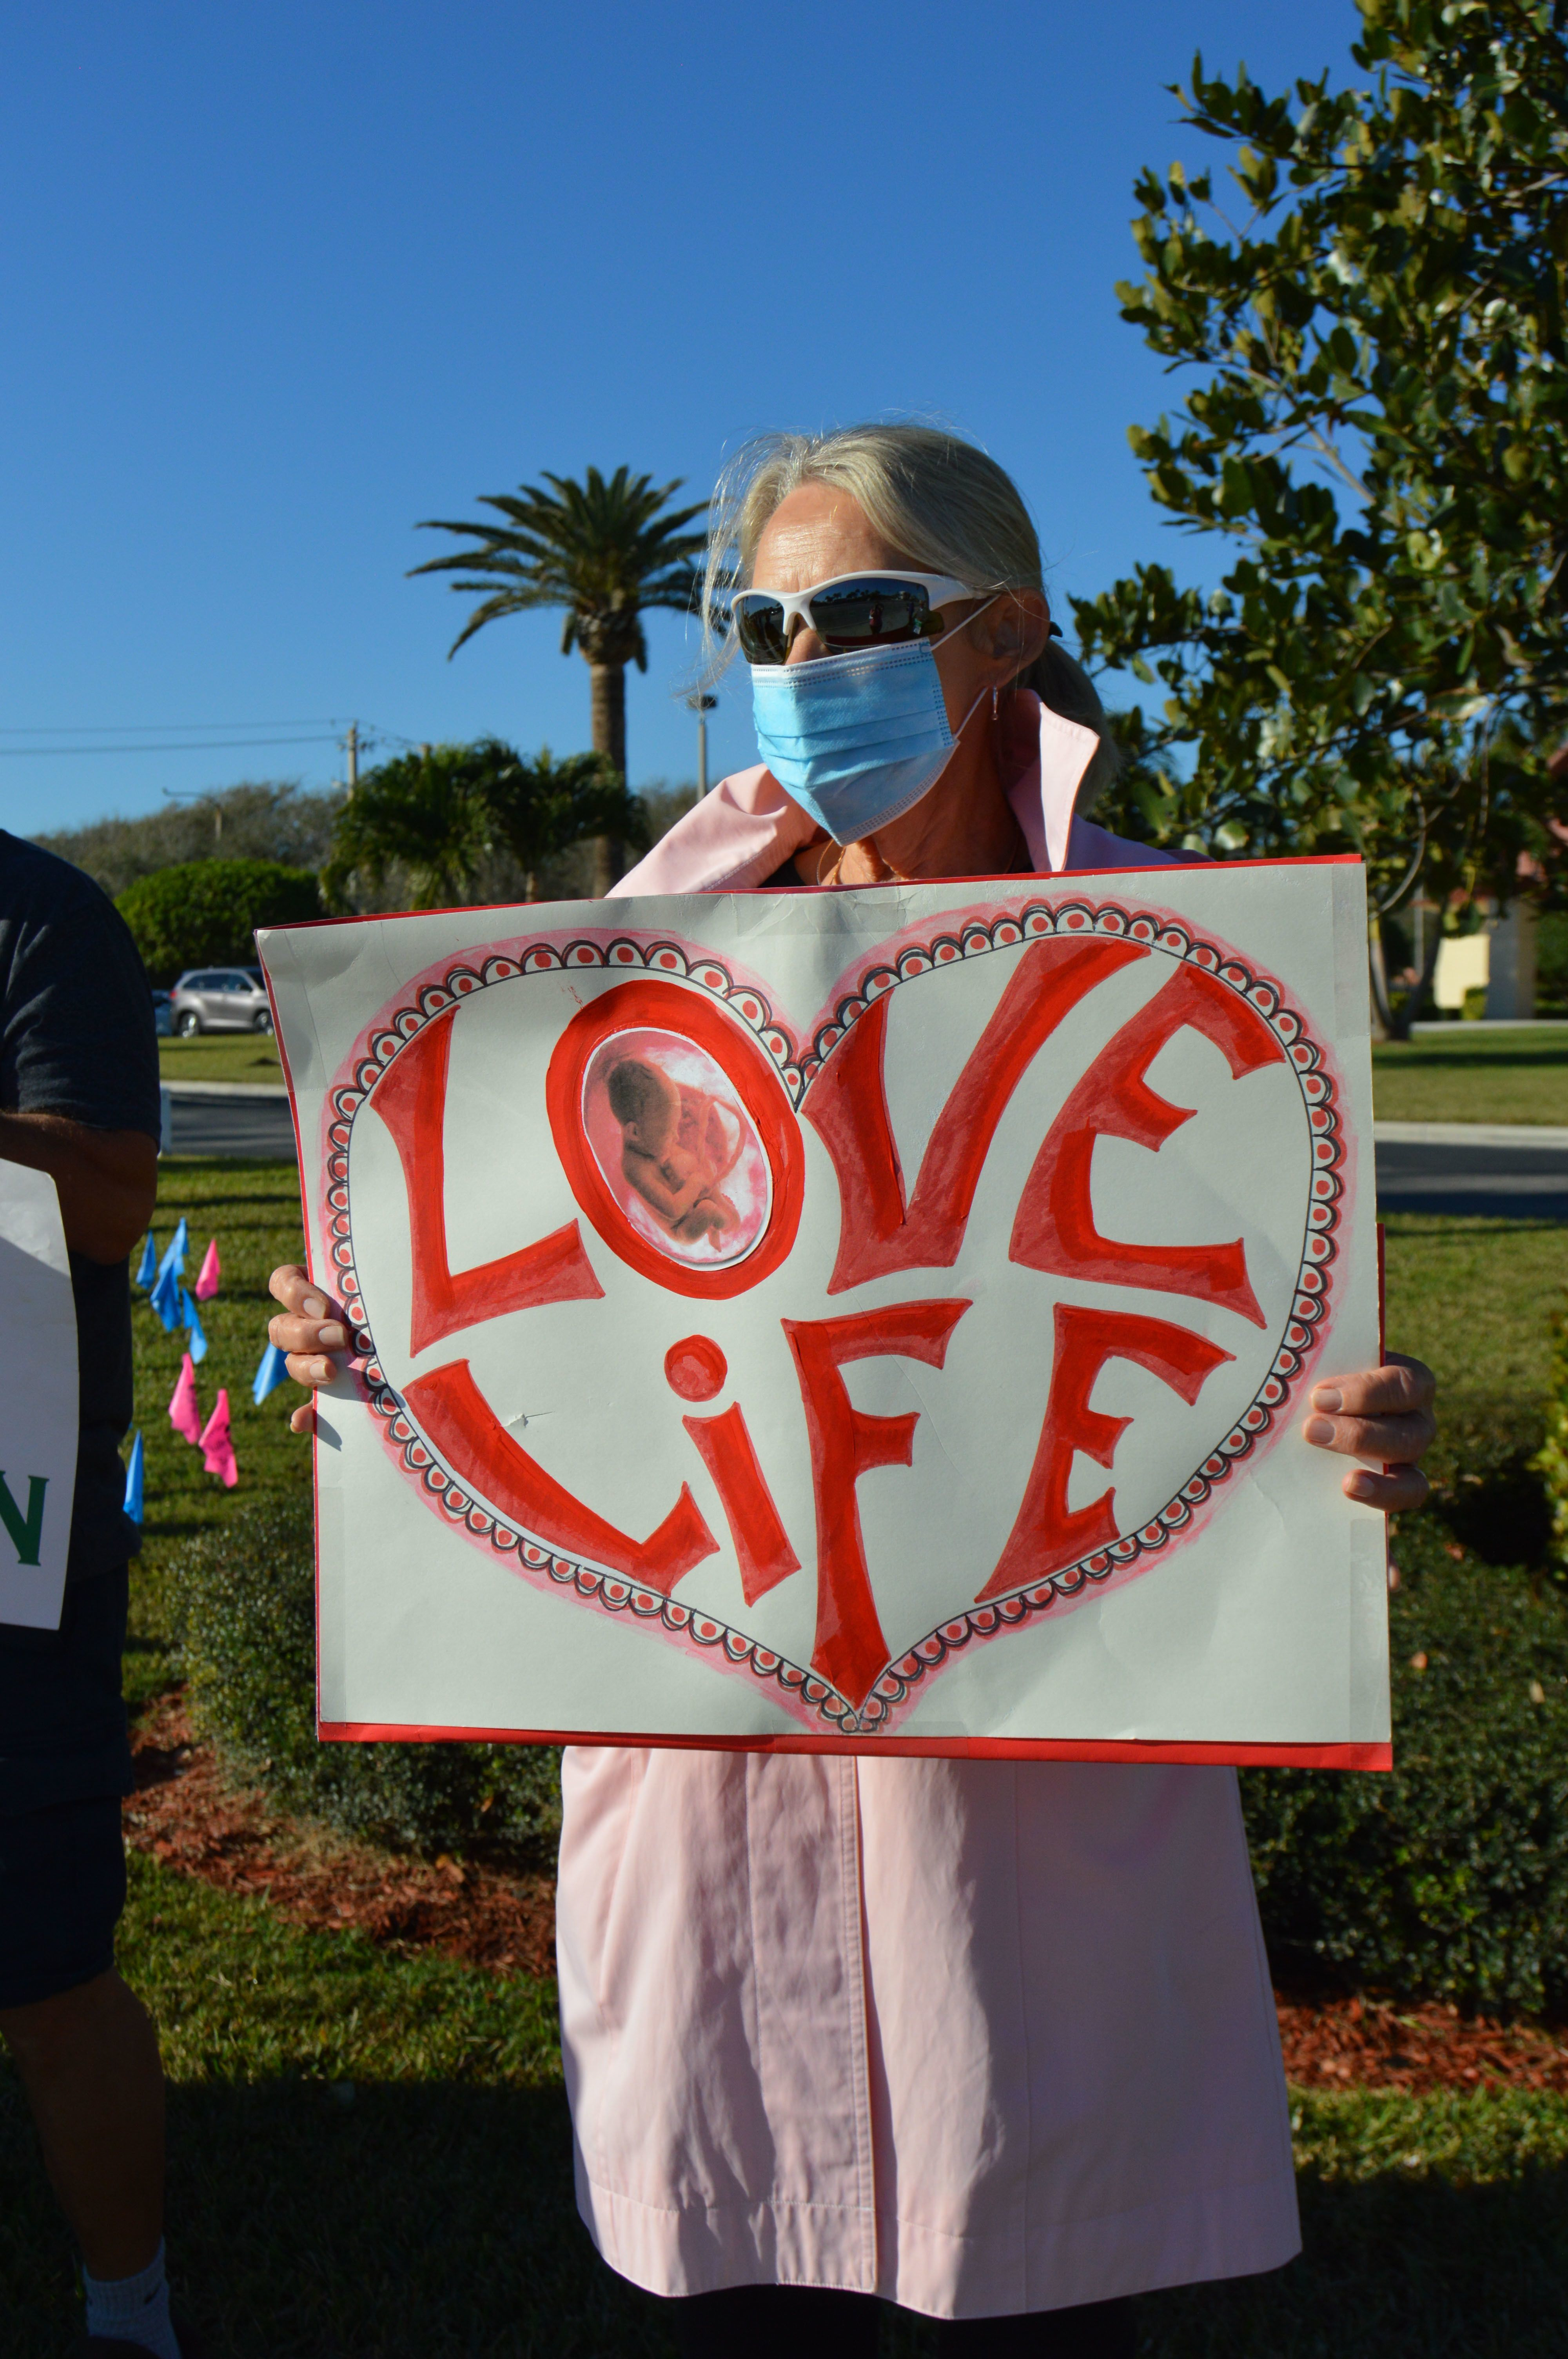 """Jesus, Protect and Save the Unborn Babies"" - Faithful throughout diocese stand for life on anniversary of Roe v. Wade"